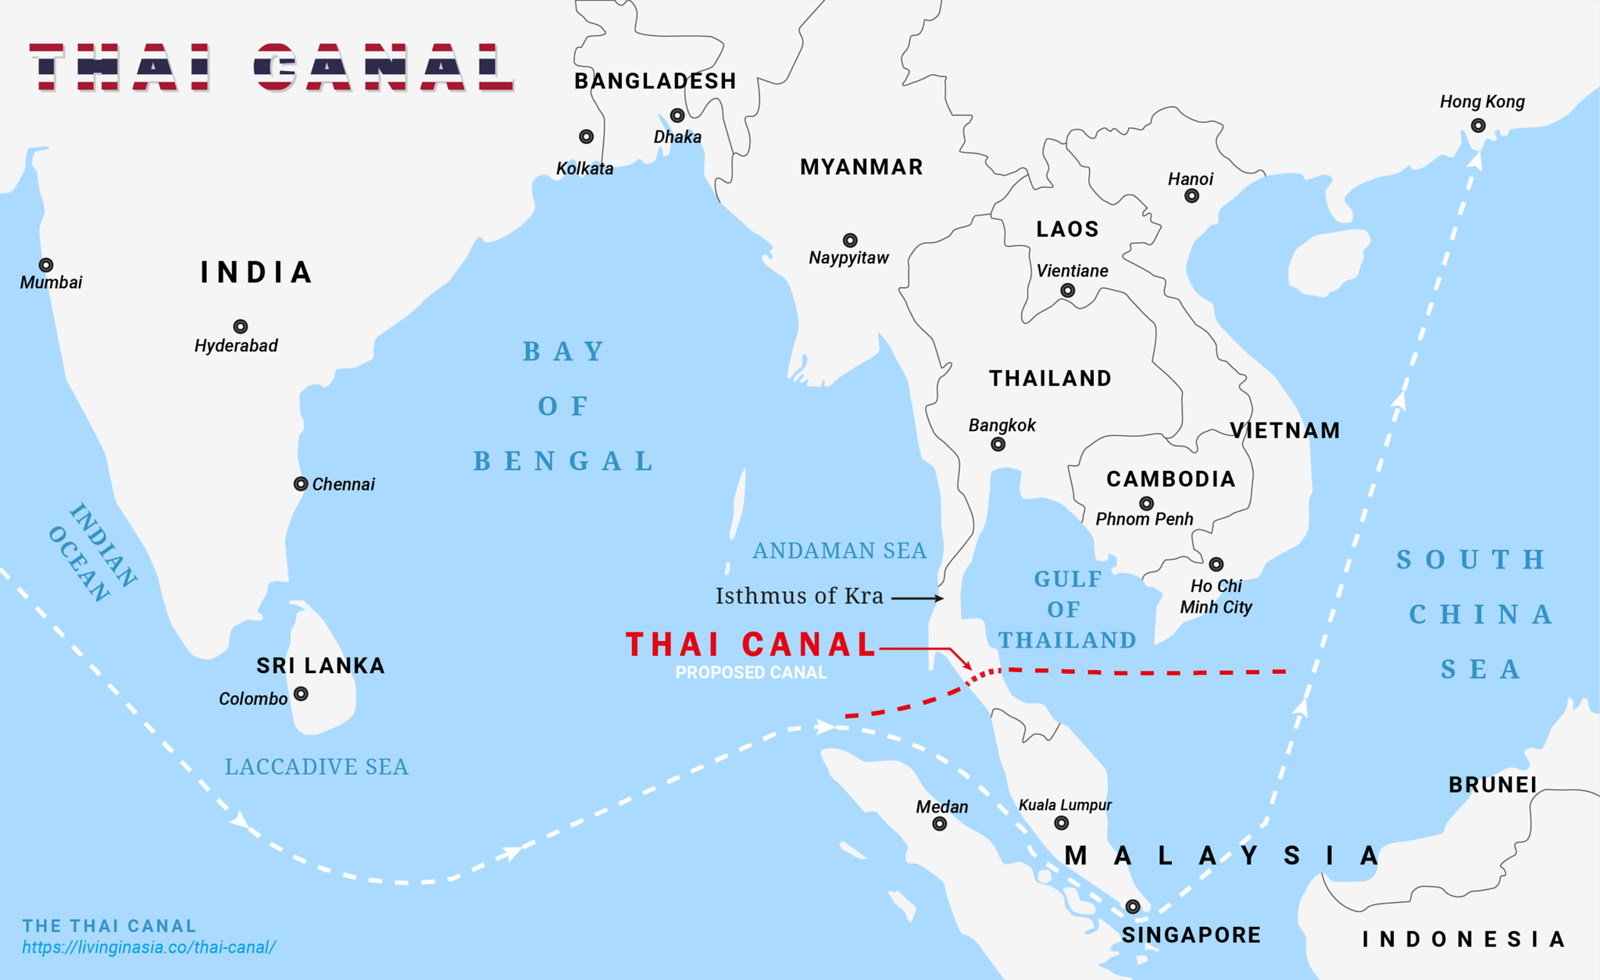 The Thai Canal - The proposed canal across the Isthmus of Kra in Southern Thailand